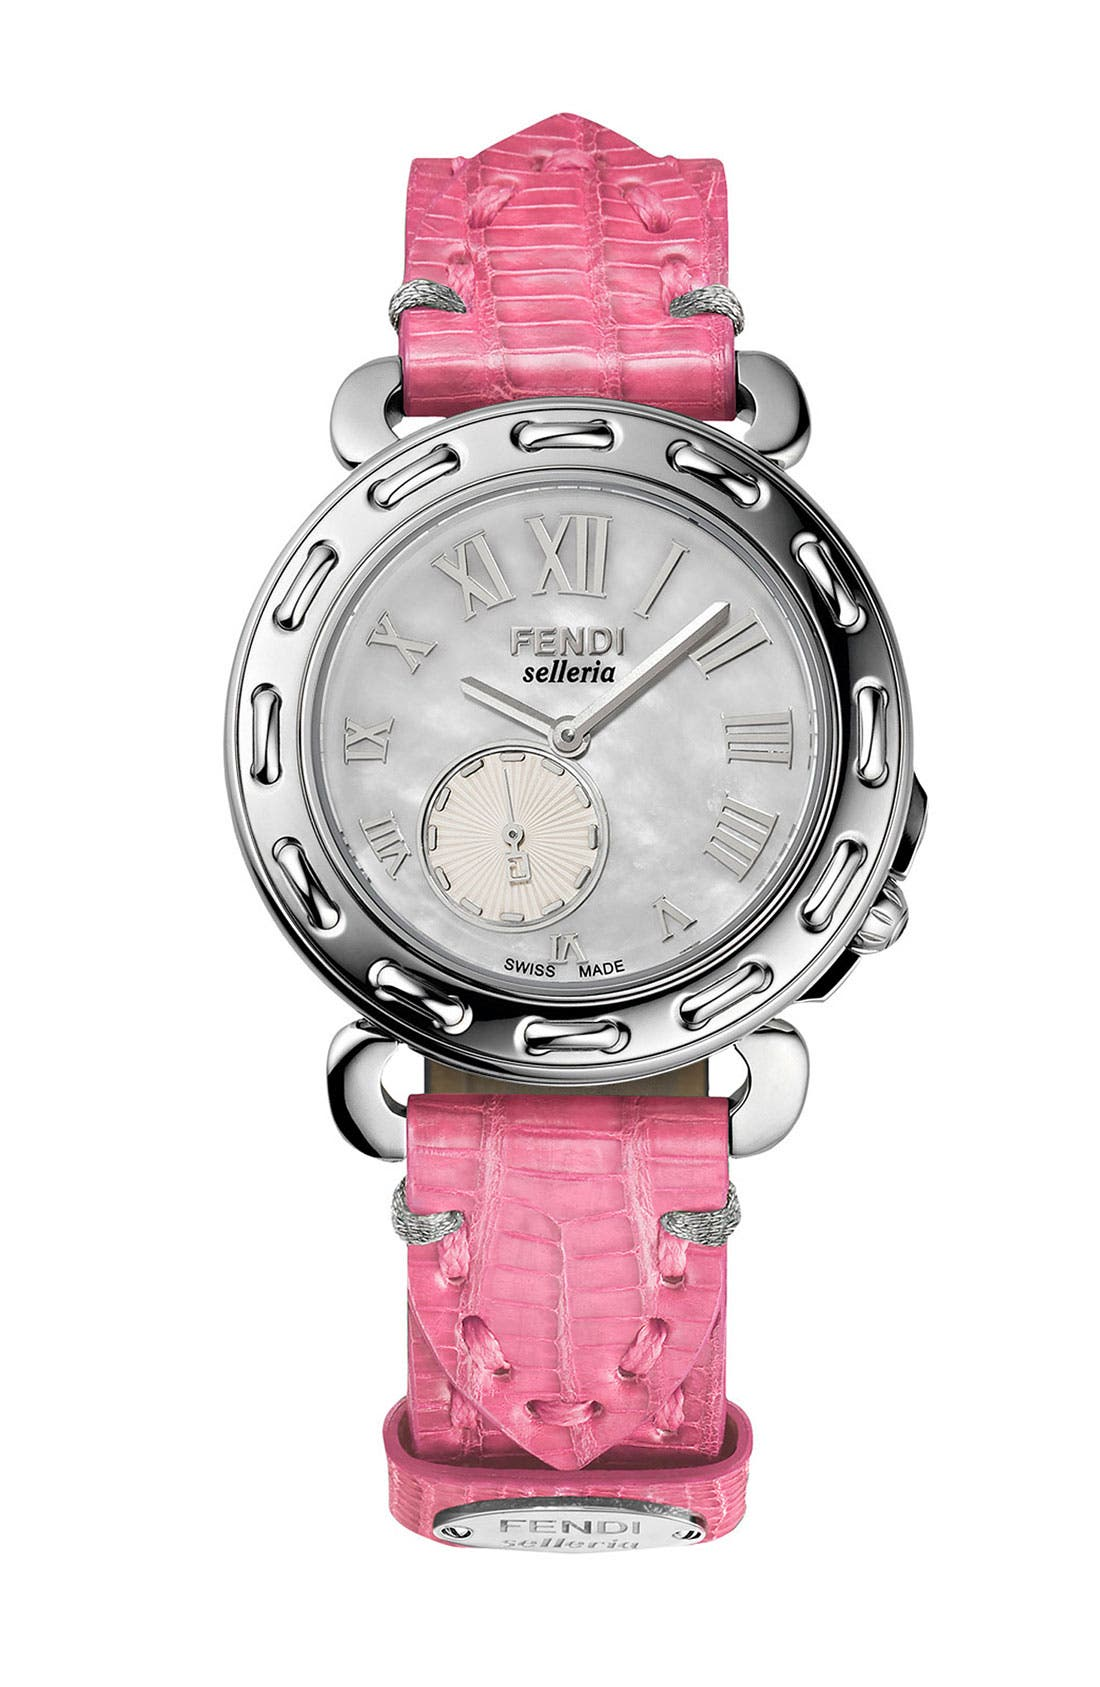 Alternate Image 1 Selected - Fendi 'Selleria' Customizable Watch